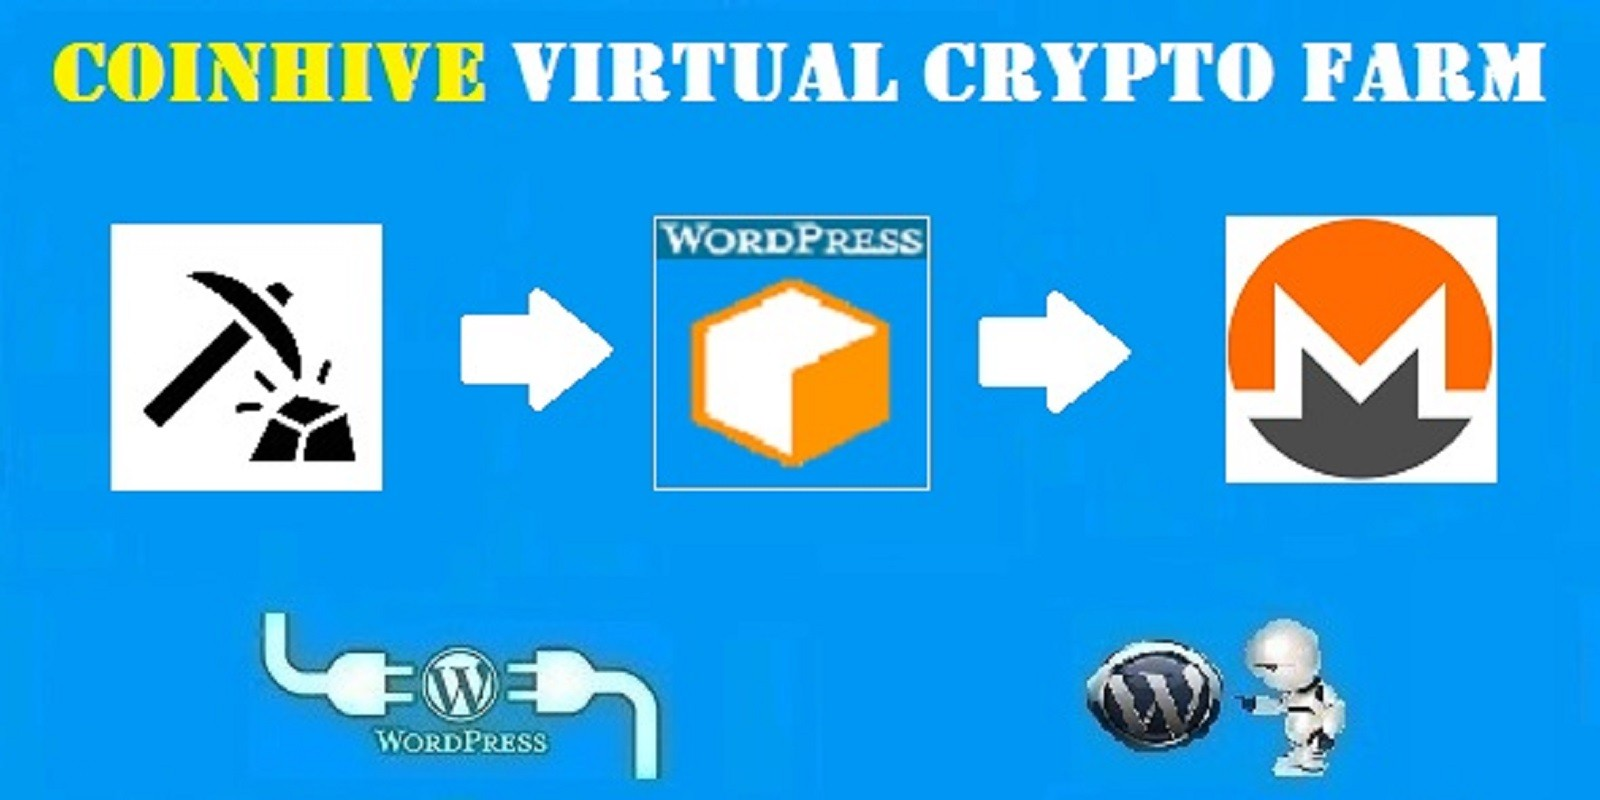 CoinHive Virtual Crypto Farm Plugin for WordPress